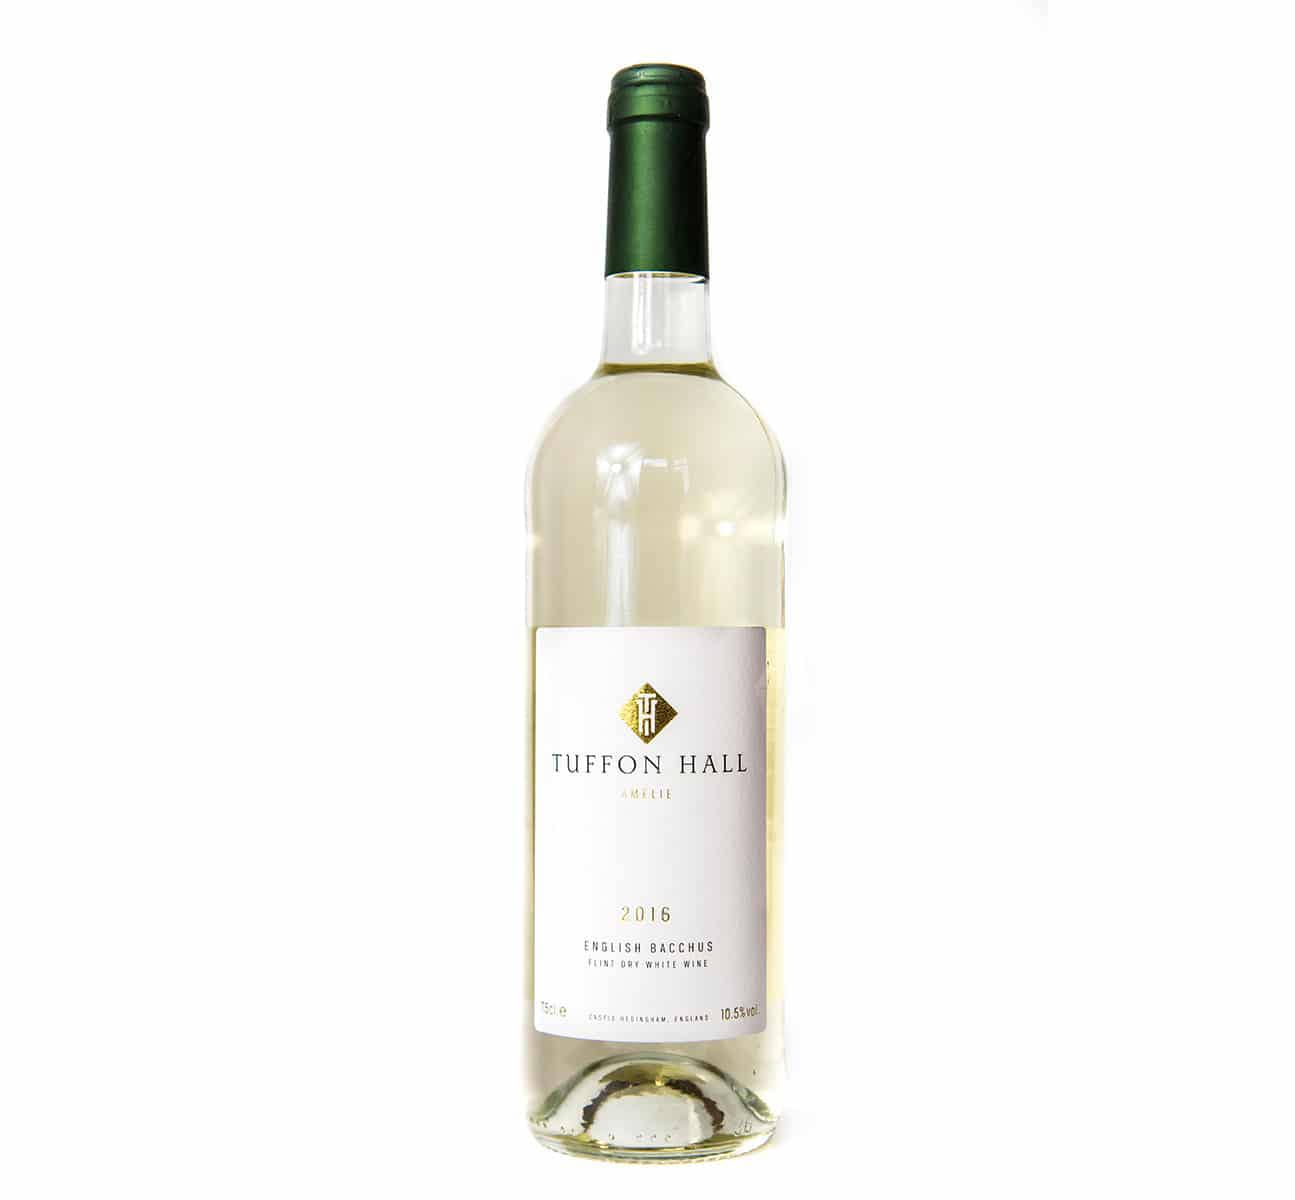 Bacchus, 2016 white wine from Tuffon Hall